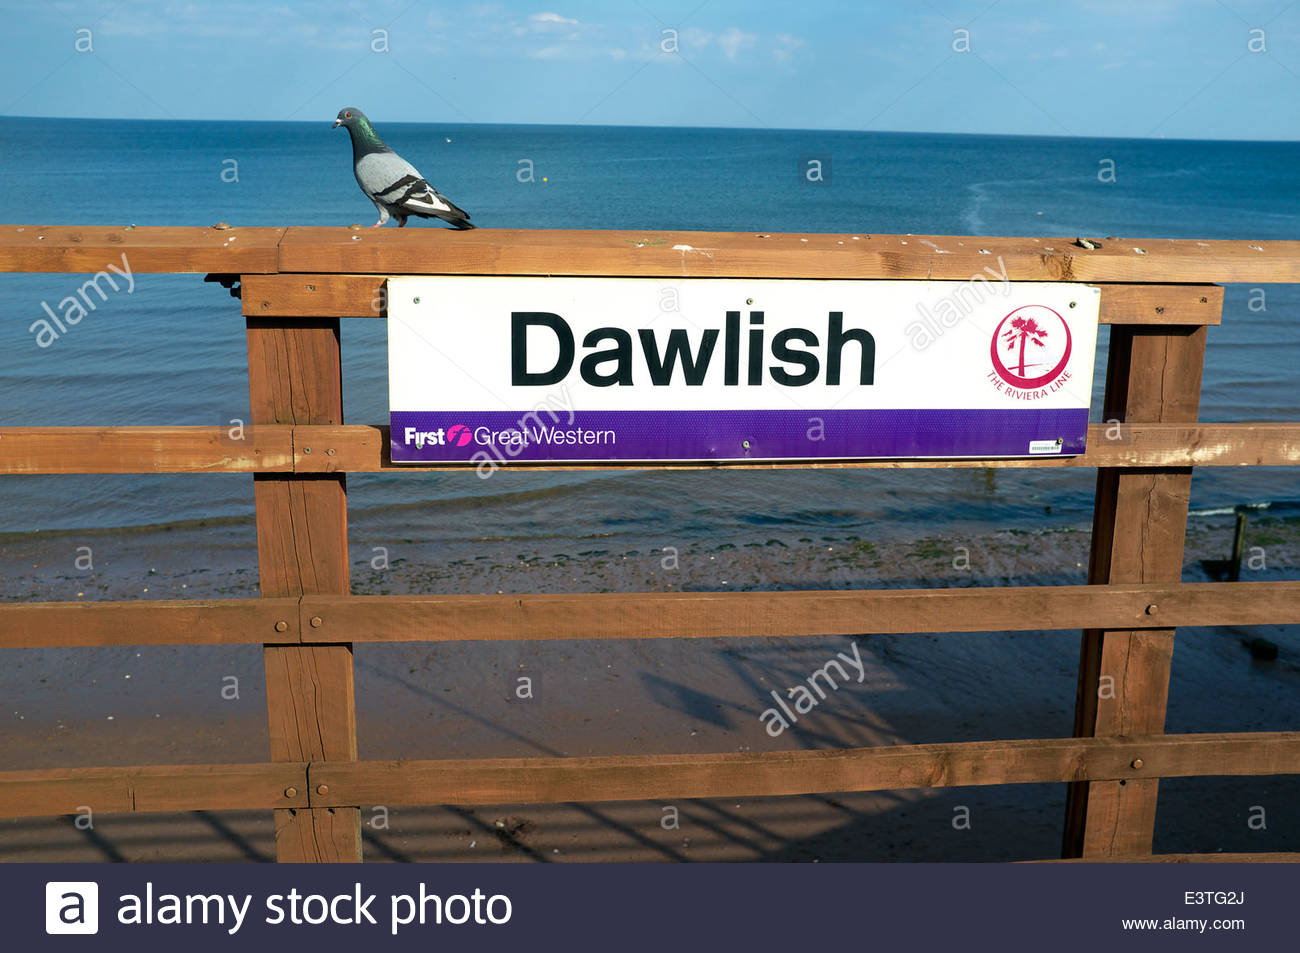 Dawlish - railway station location sign, on the seawall route in south Devon, UK. - Stock Image